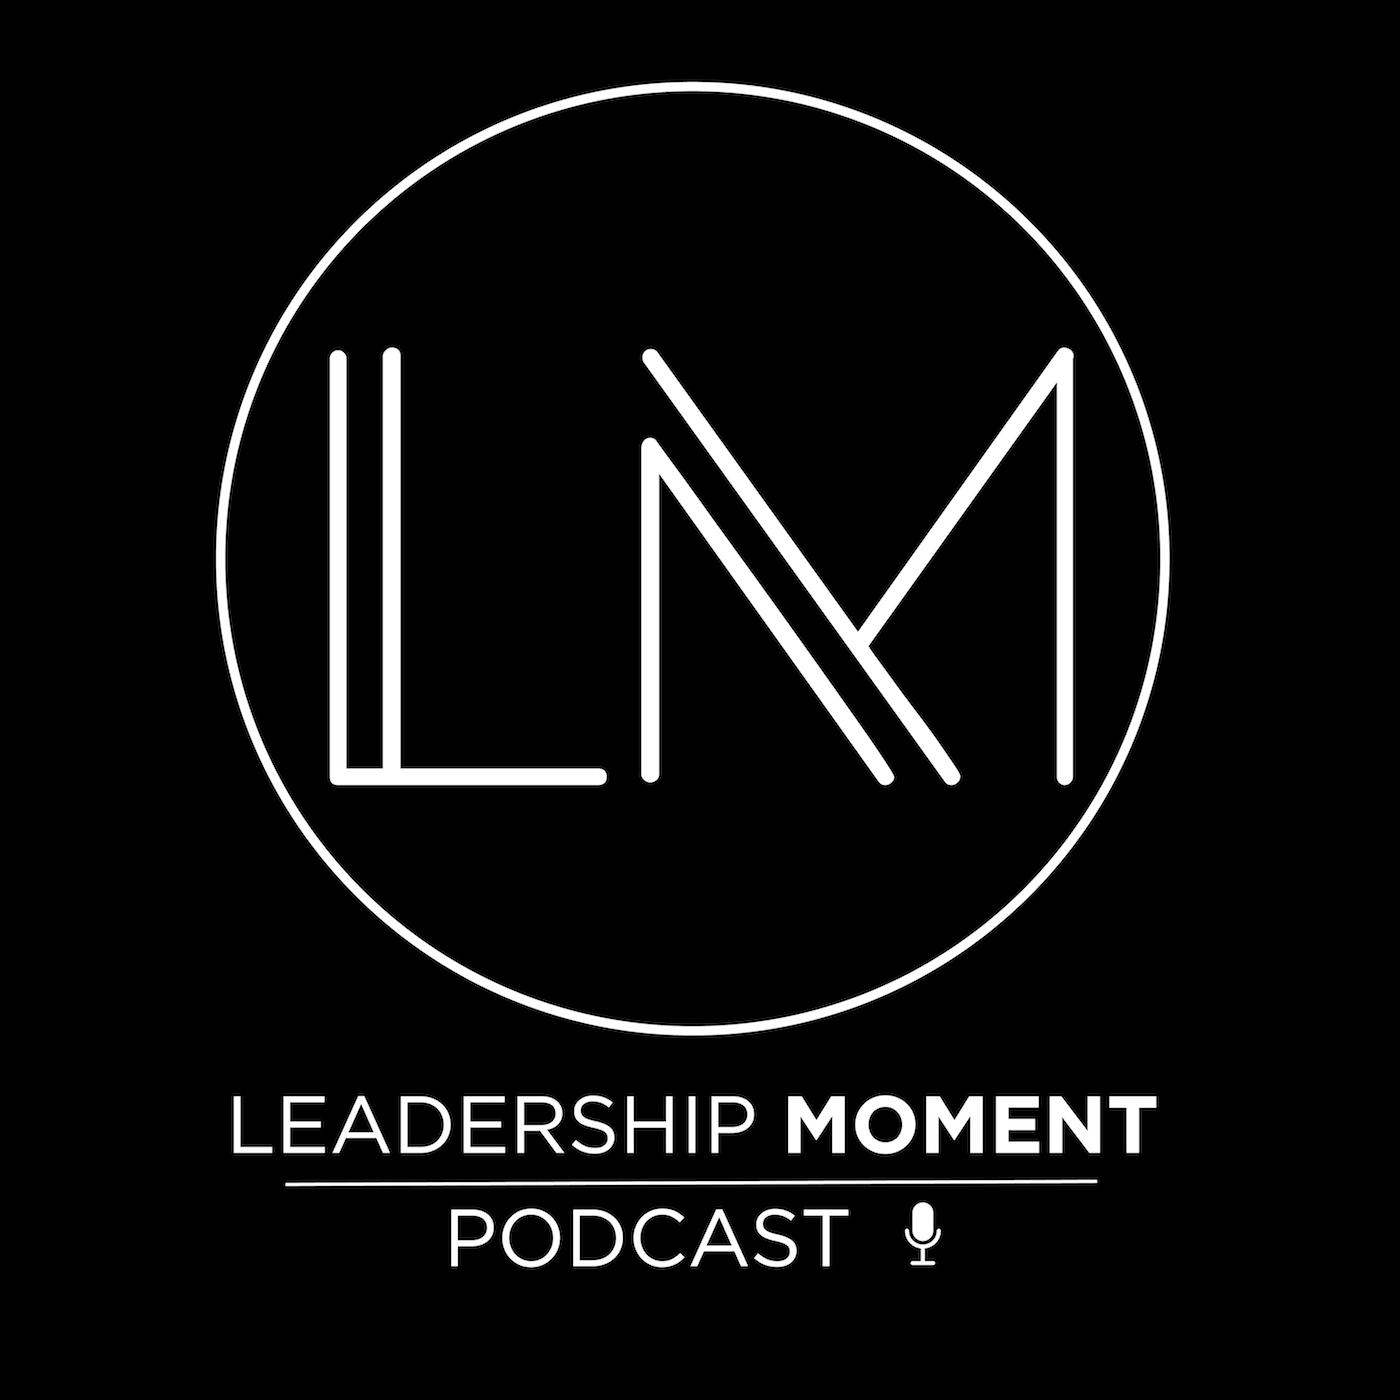 Leadership with Henri Nouwen and the Desert Fathers - LM0206